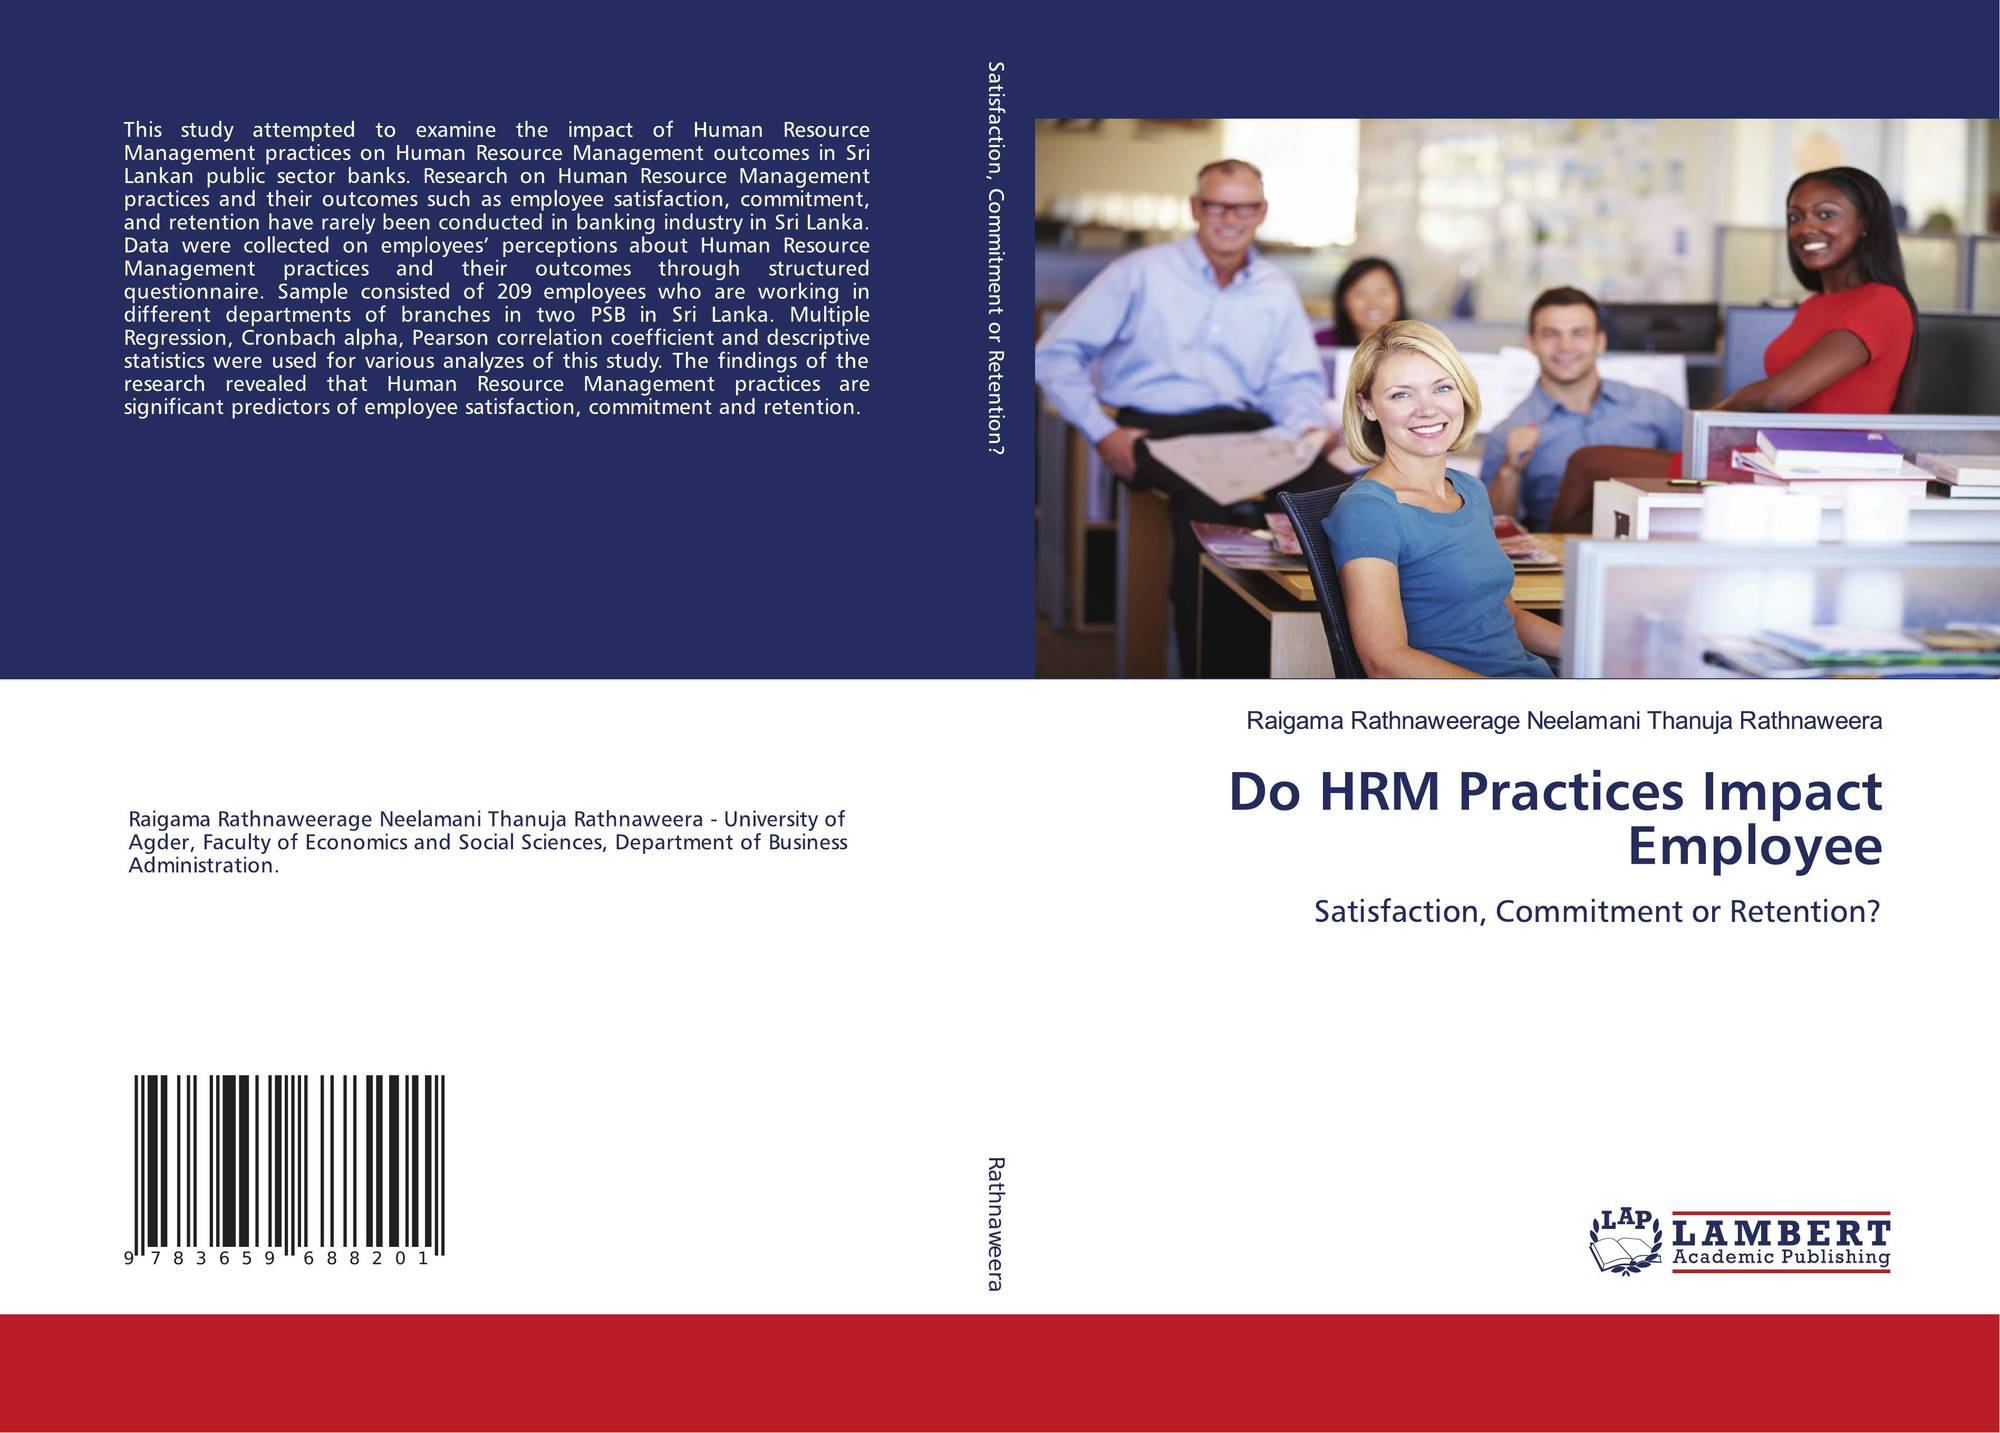 employee satisfaction and the hrm practices Satisfaction, organisational commitments and leadership practice that affect employee retention in the uae with emphasis on public organisations, in a comparative study of sharjah and dubai.